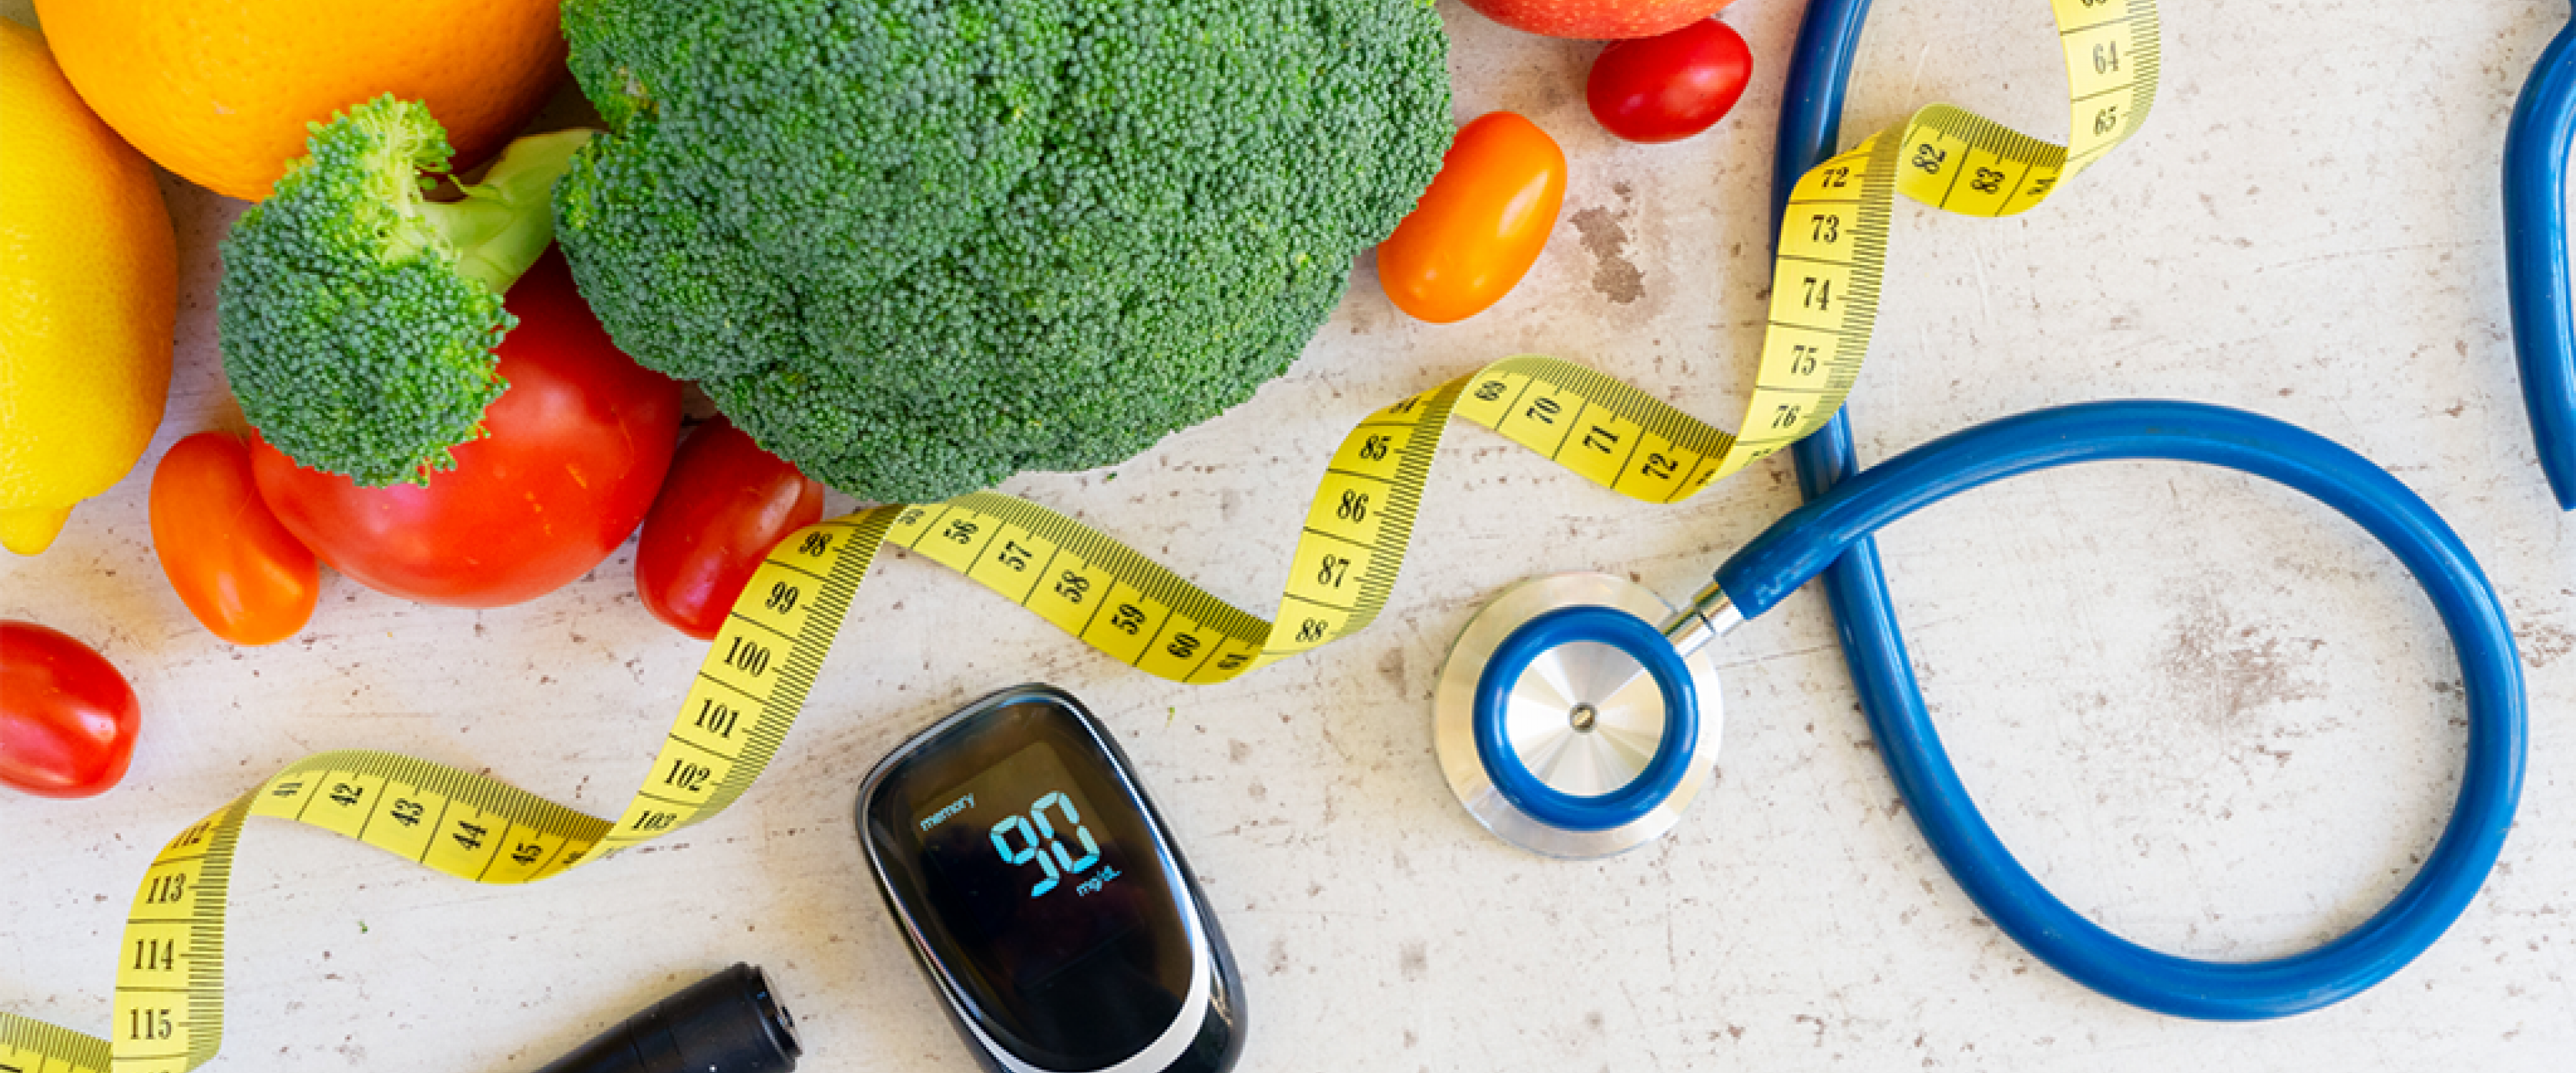 vegetables on a table, diabetes meter, measuring tape and stethoscope